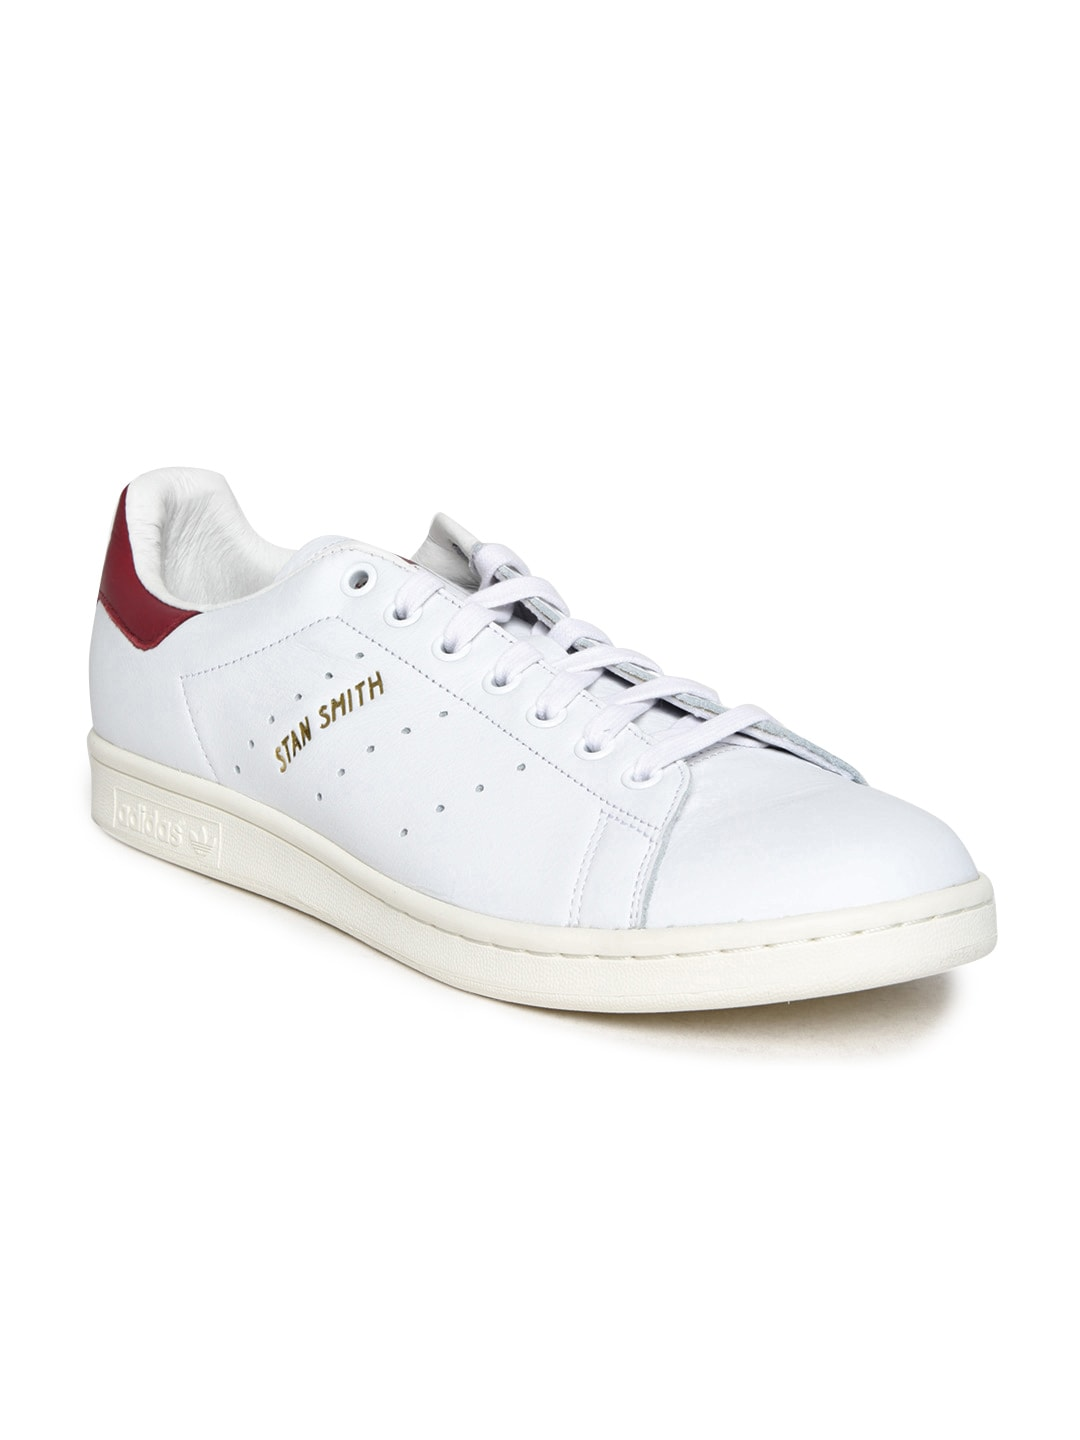 198bfaa3b Adidas Stan Smith Sneakers - Buy Stan Smith Shoes and Sneakers Online in  India - Myntra